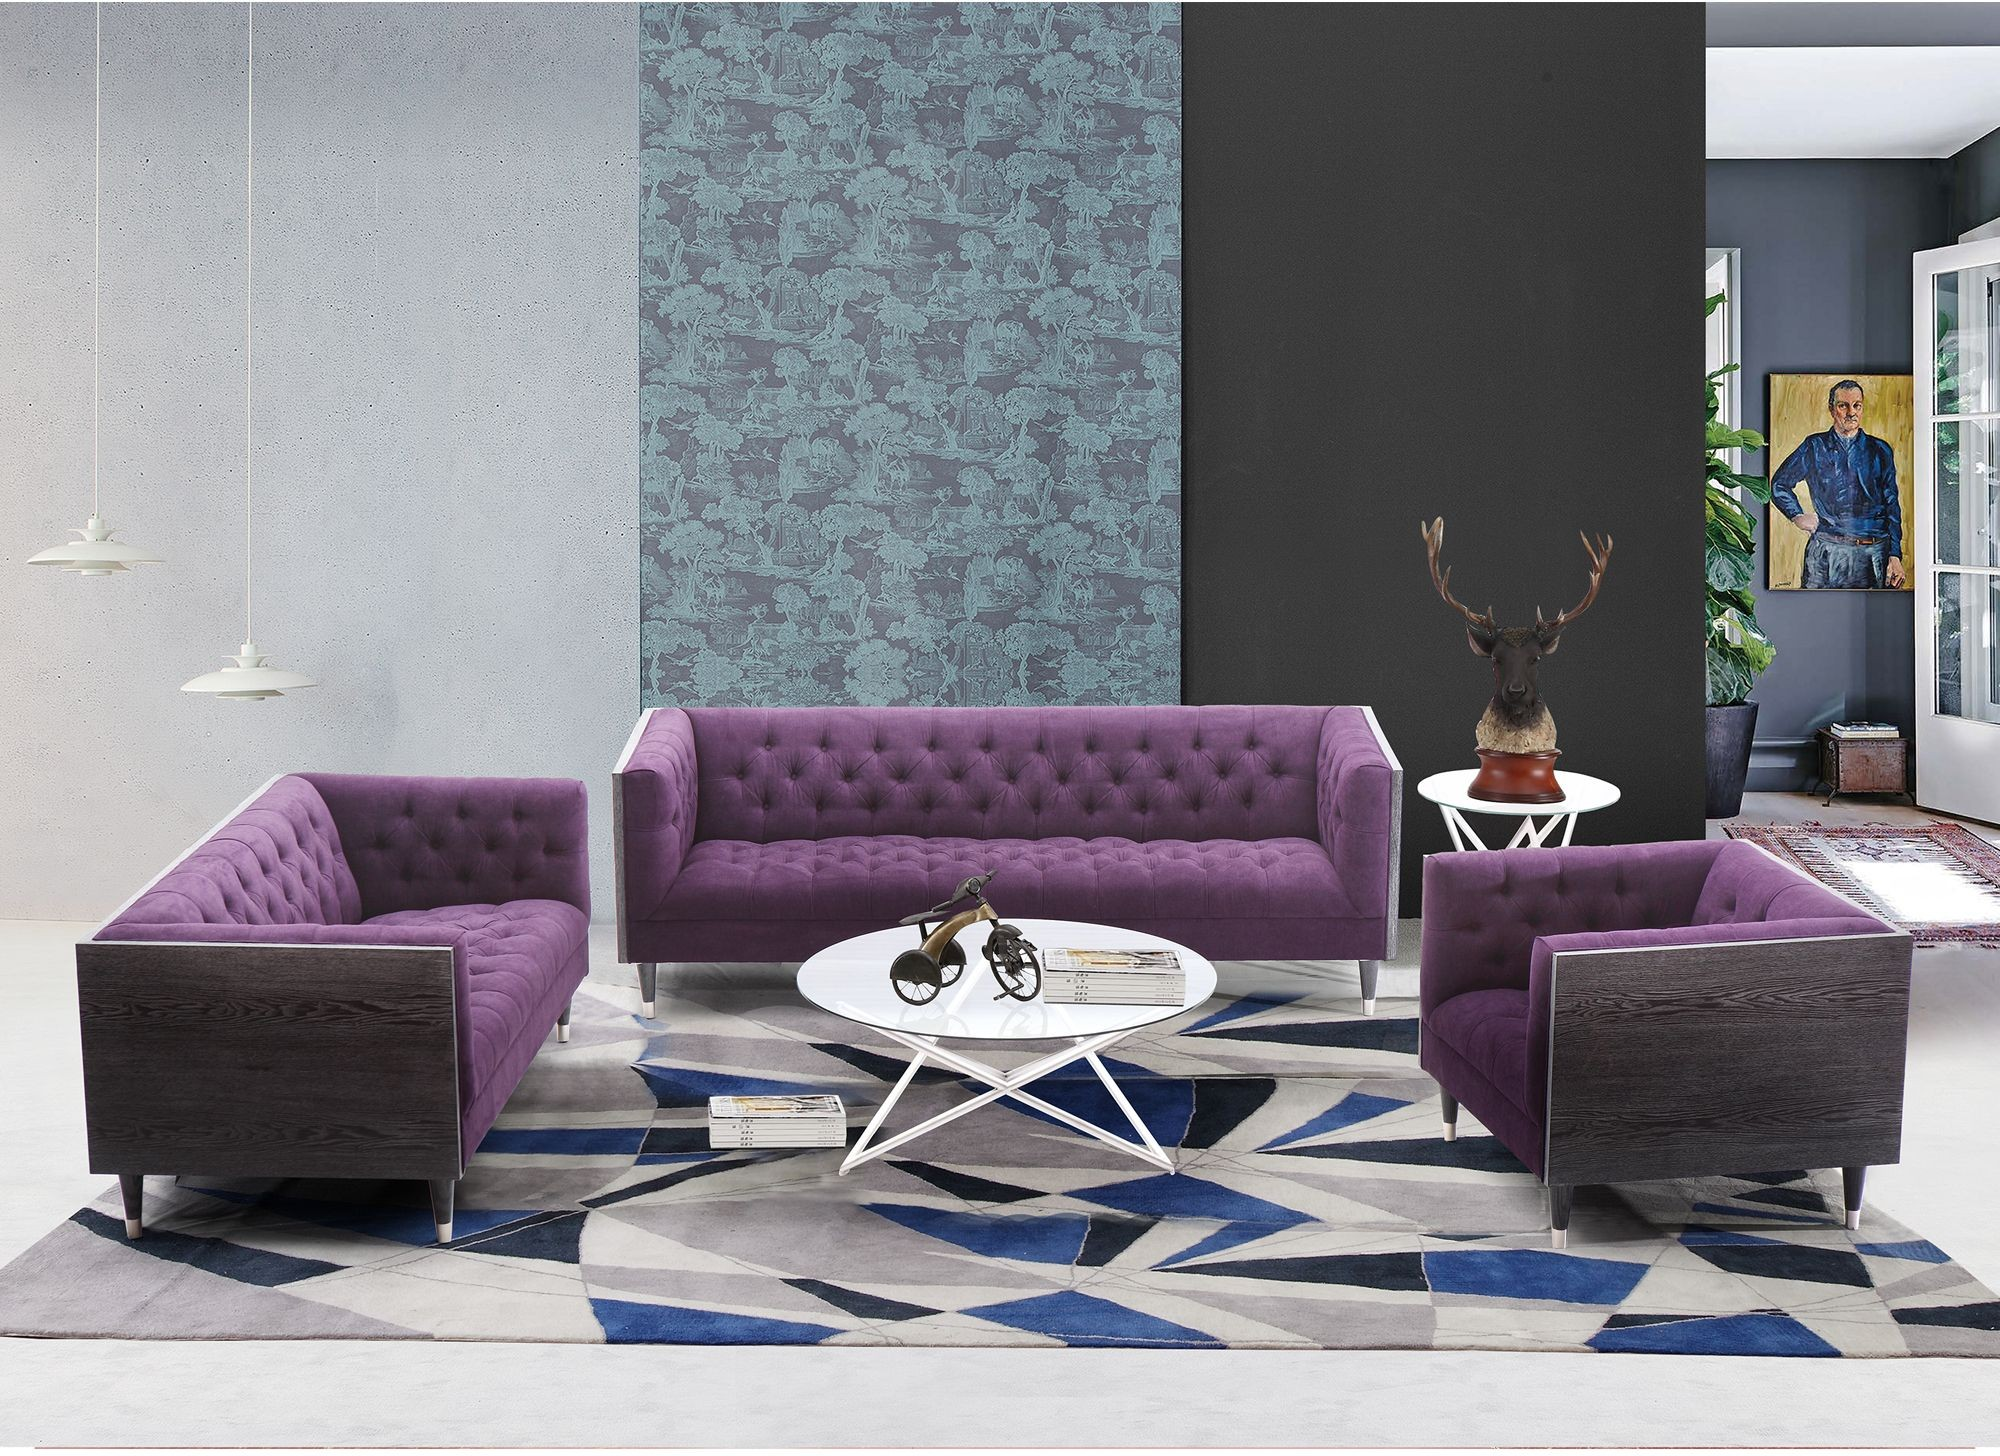 These 6 Pieces Of Colorful Furniture Are Absolute Must Haves: Bellagio Purple Fabric Living Room Set, LCBE3PU, Armen Living